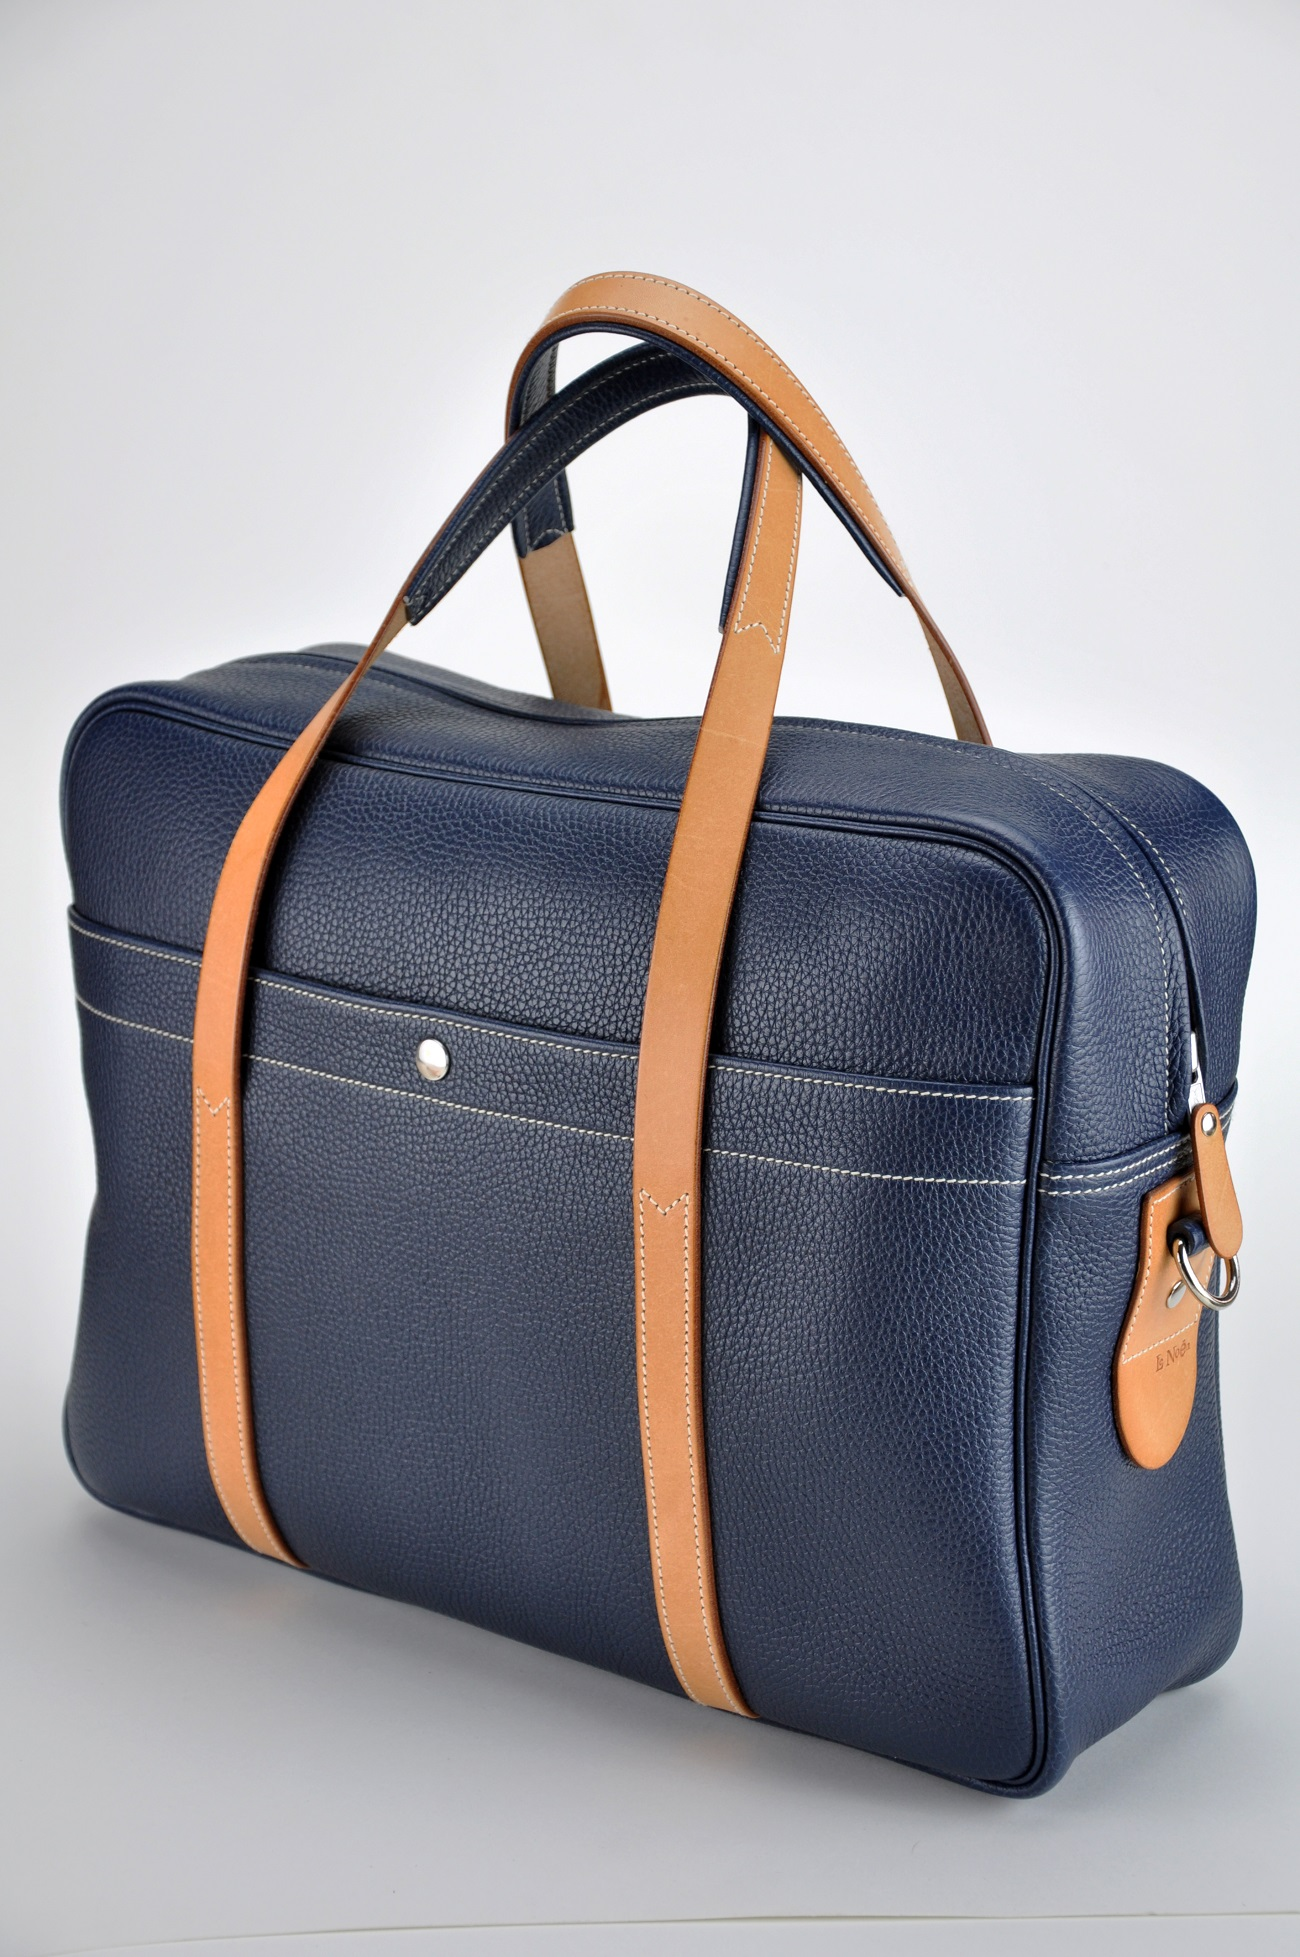 Man bag, luggage London Gentleman made by luxury leather goods LE NOËN made in France.